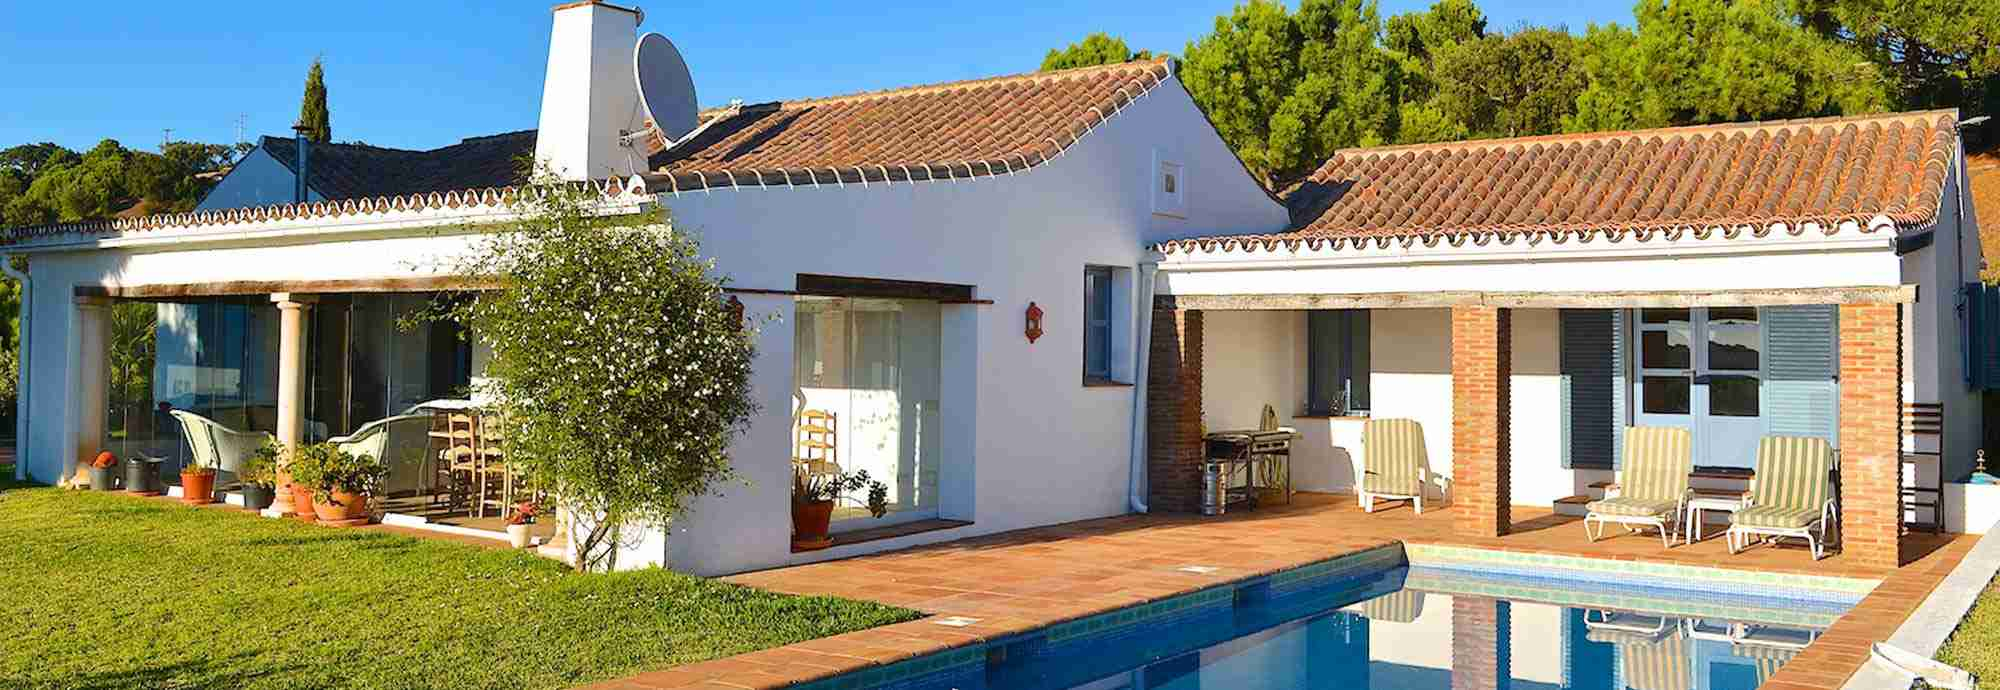 Private rural villa with Africa view close to Costa del Sol beaches